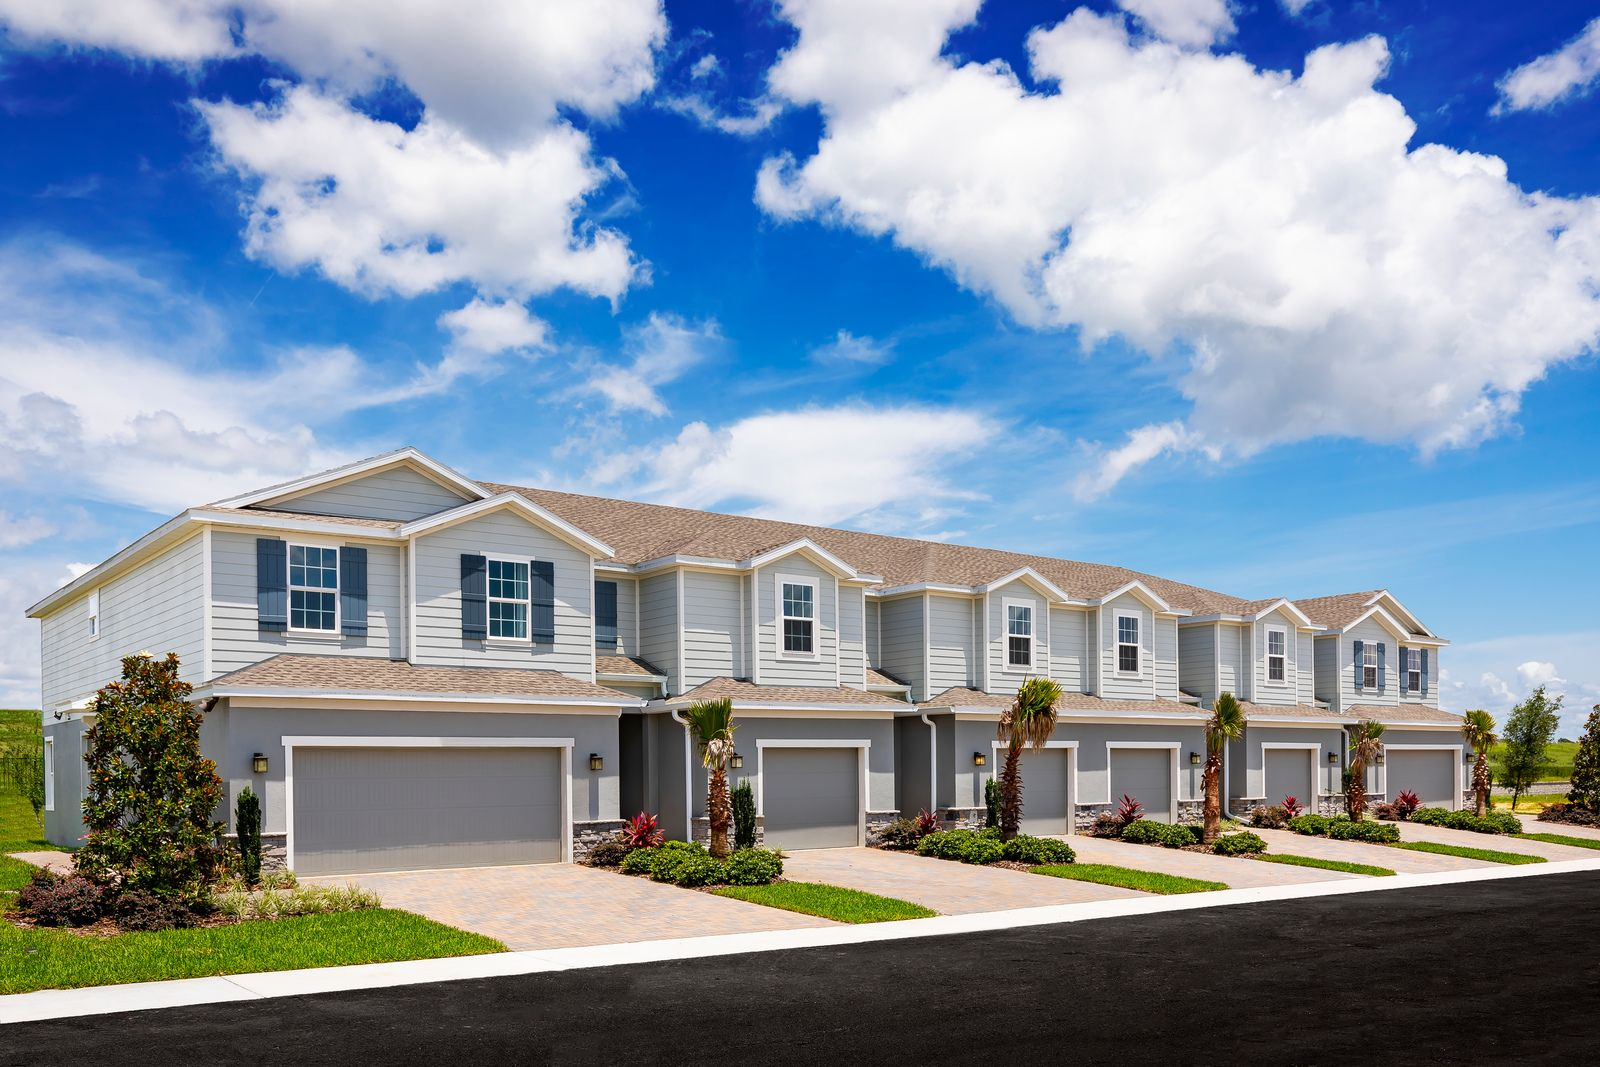 Welcome home to Holden Ridge in Minneola, FL!:Schedule a tour to check outMinneola's ONLY new gated Luxury Townhome community with low-maintenance living in a stunning, natural setting near turnpike & top schools. USDA Approved!